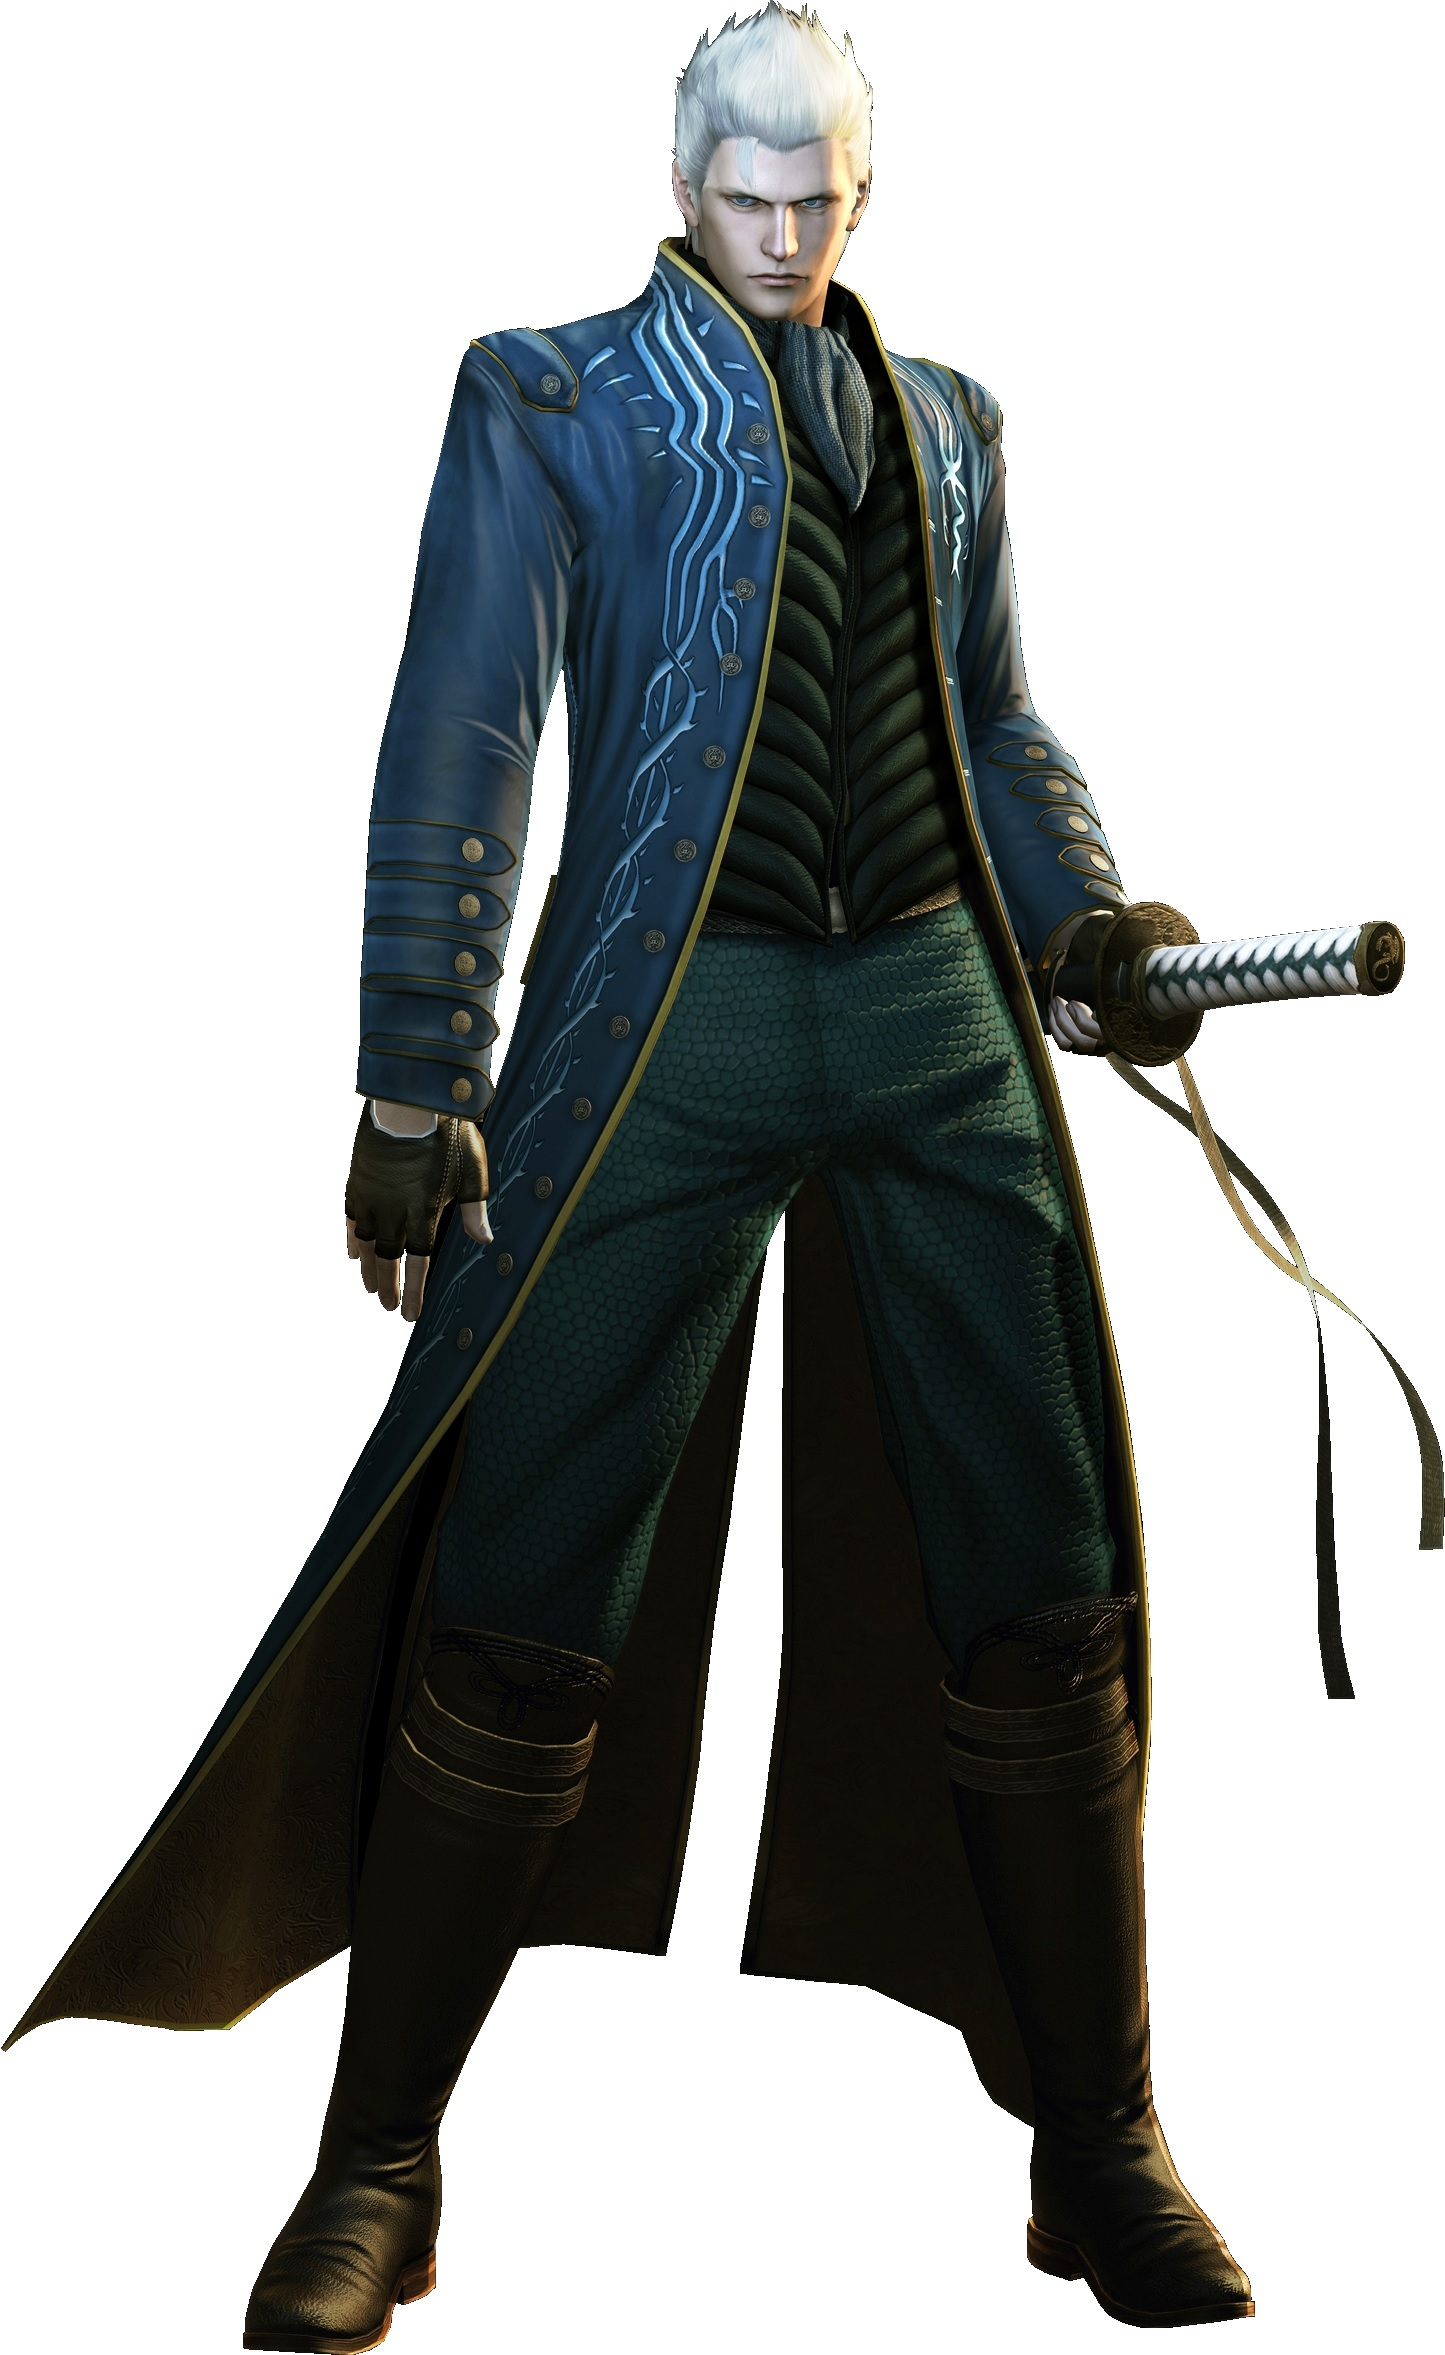 http://img4.wikia.nocookie.net/__cb20150803205324/villains/images/9/90/Vergil_%28Devil_May_Cry_4%29.jpg